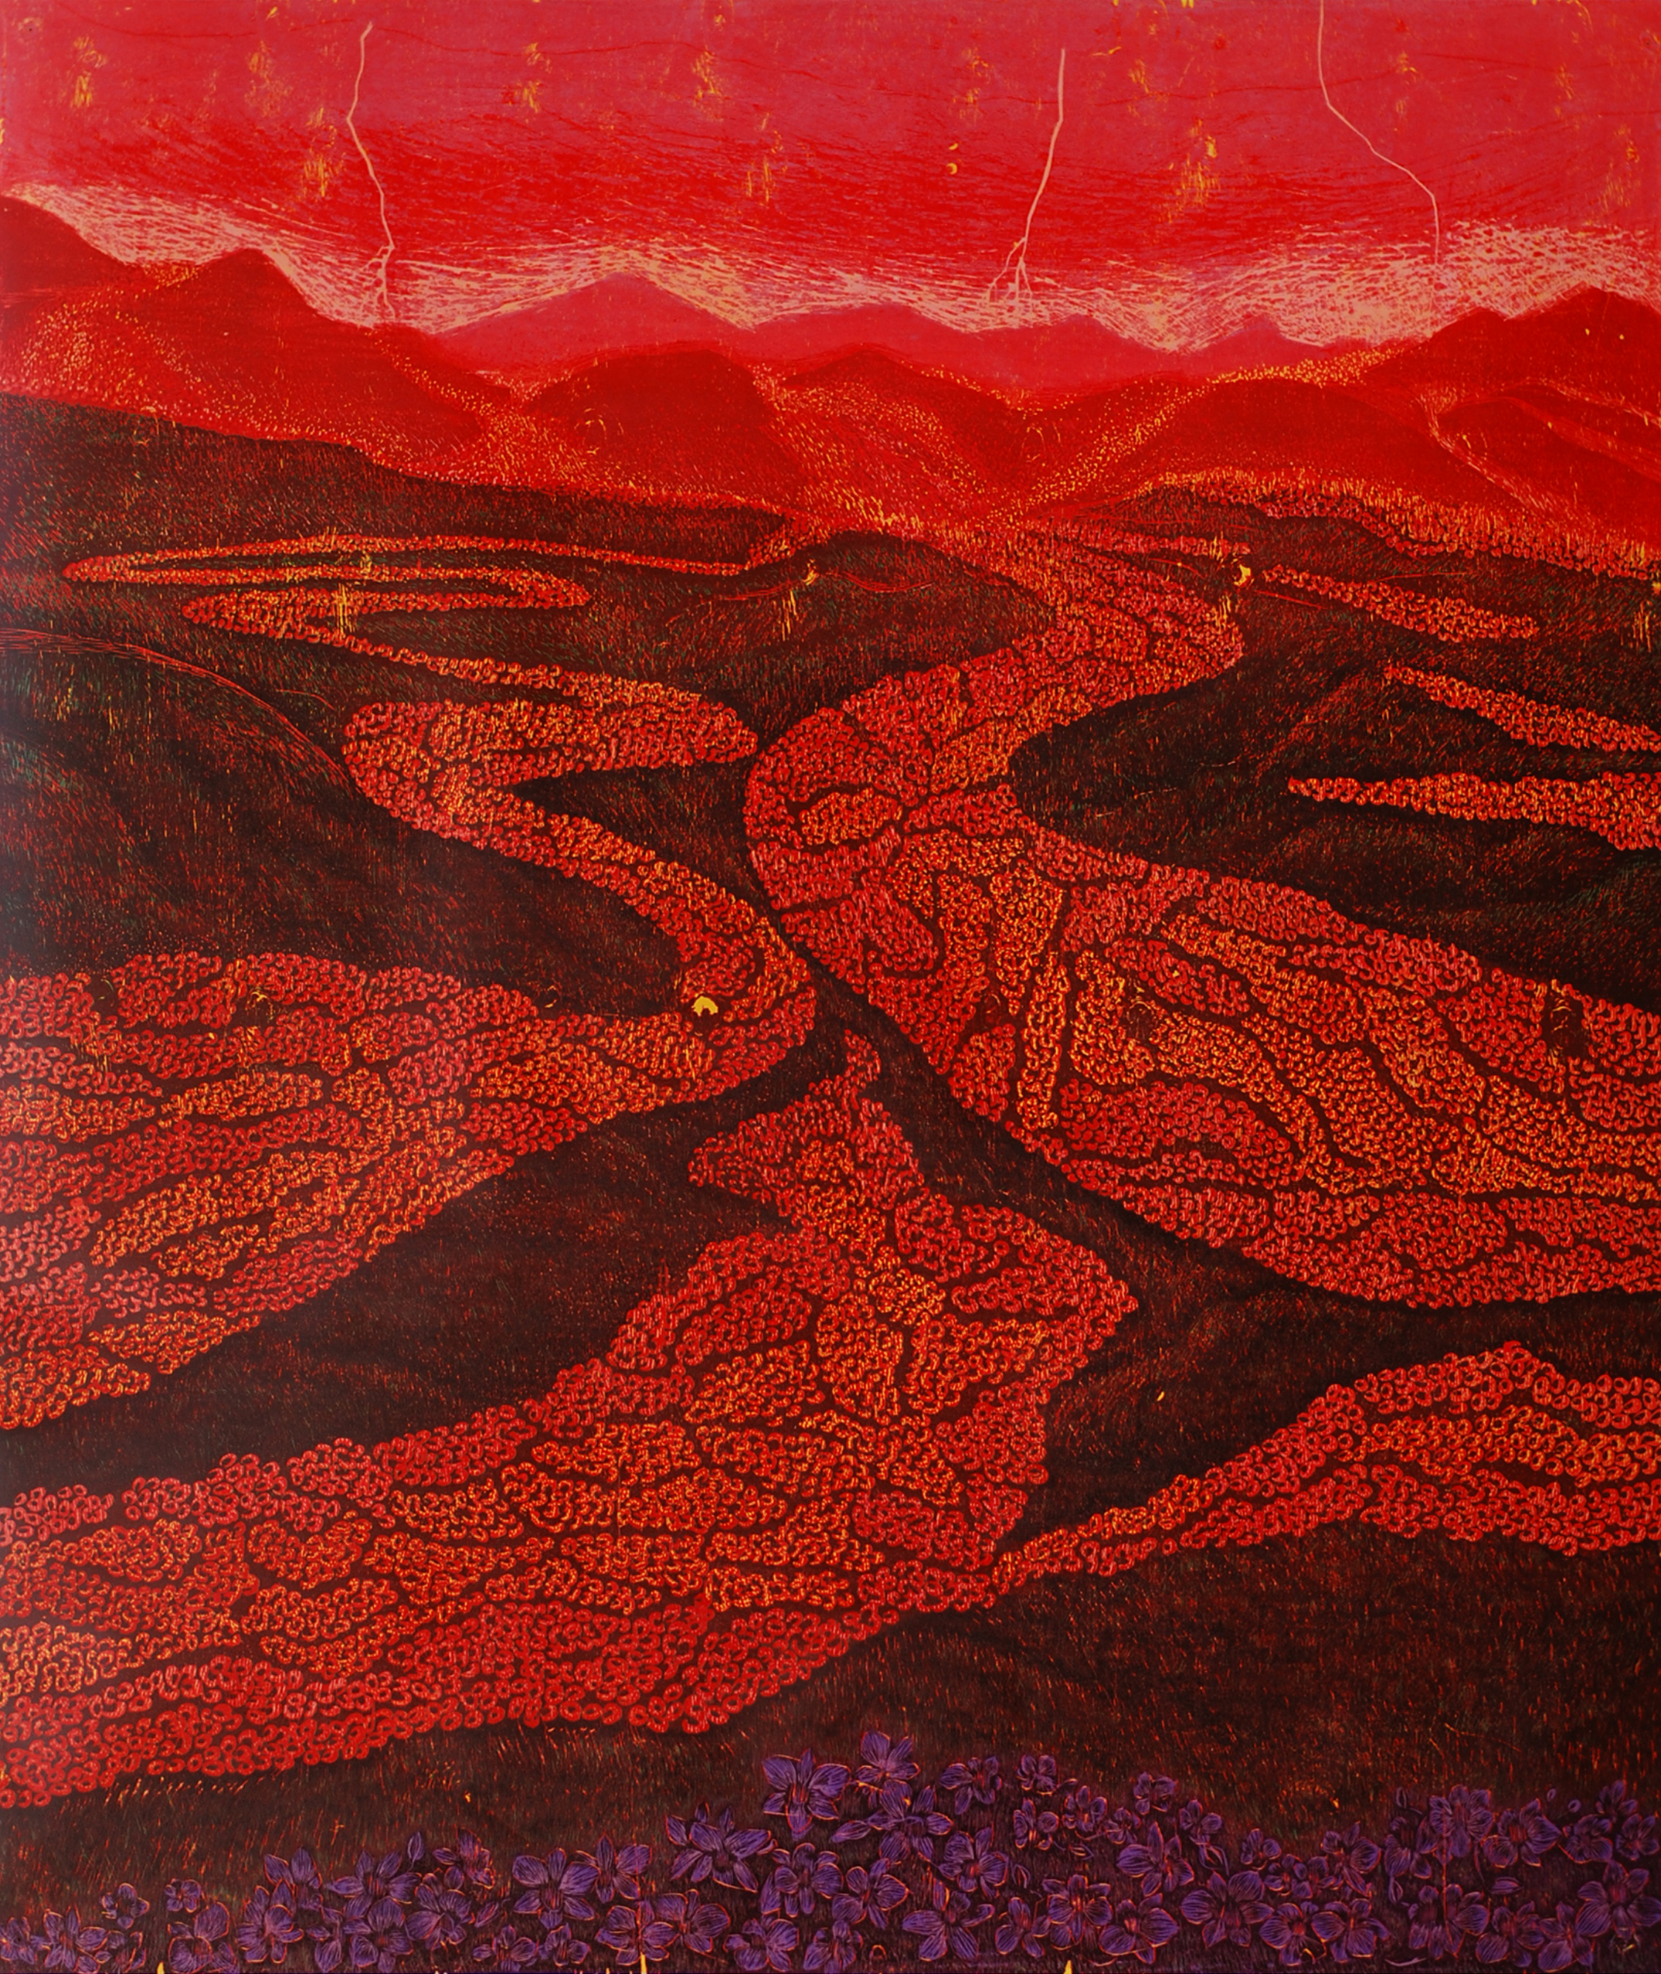 Flooded Flow and Silent Torso 3,  2014   Woodcut, edition of 3   44 x 52 in.